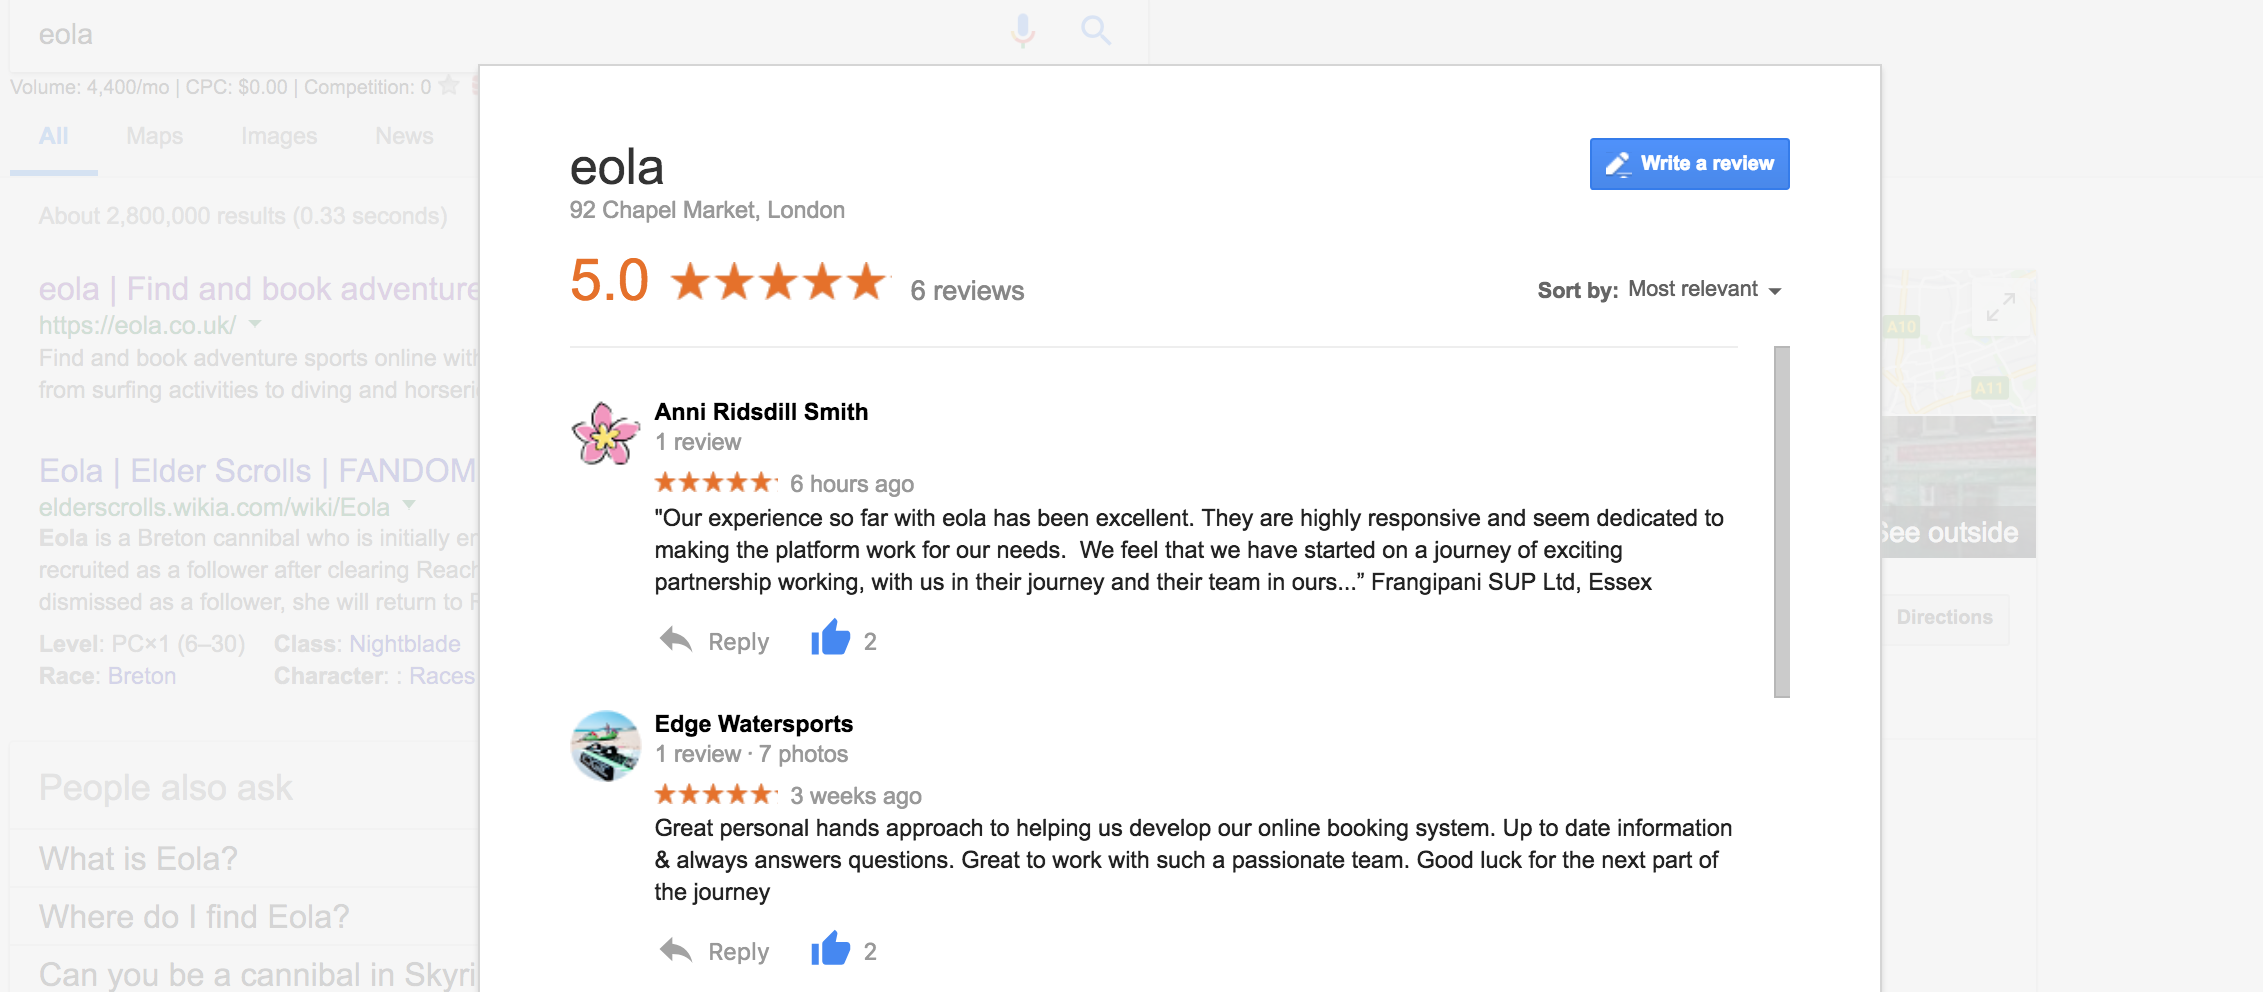 Reviews of eola